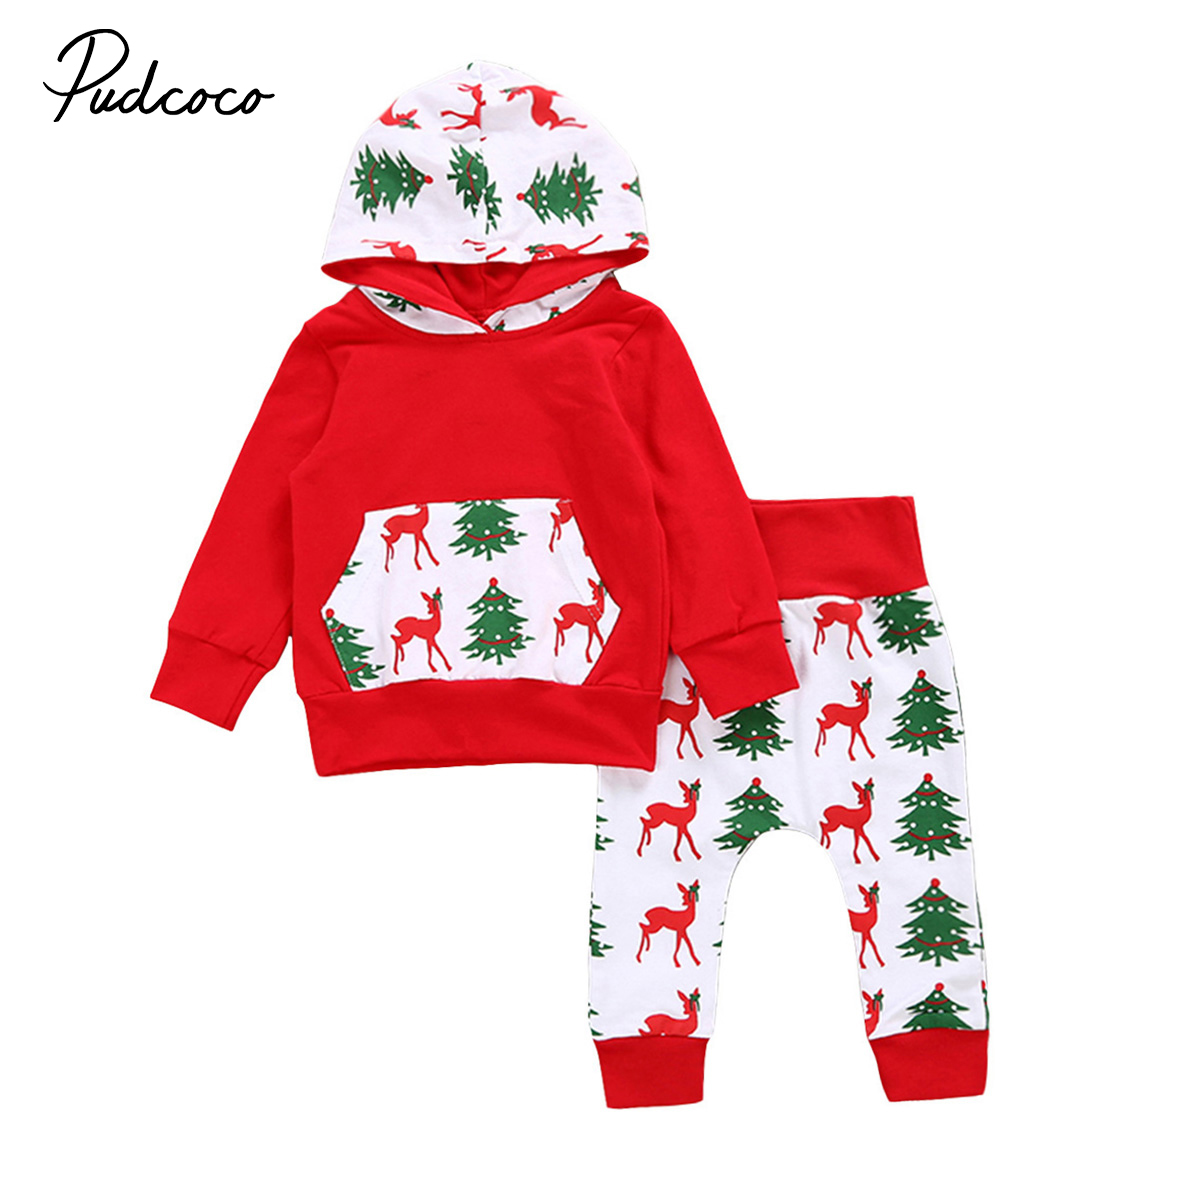 Christmas Baby clothes set Red Newborn Baby Boys Girls Deer print Hoodie + Pants 2Pcs Outfits Set Clothes Baby clothing